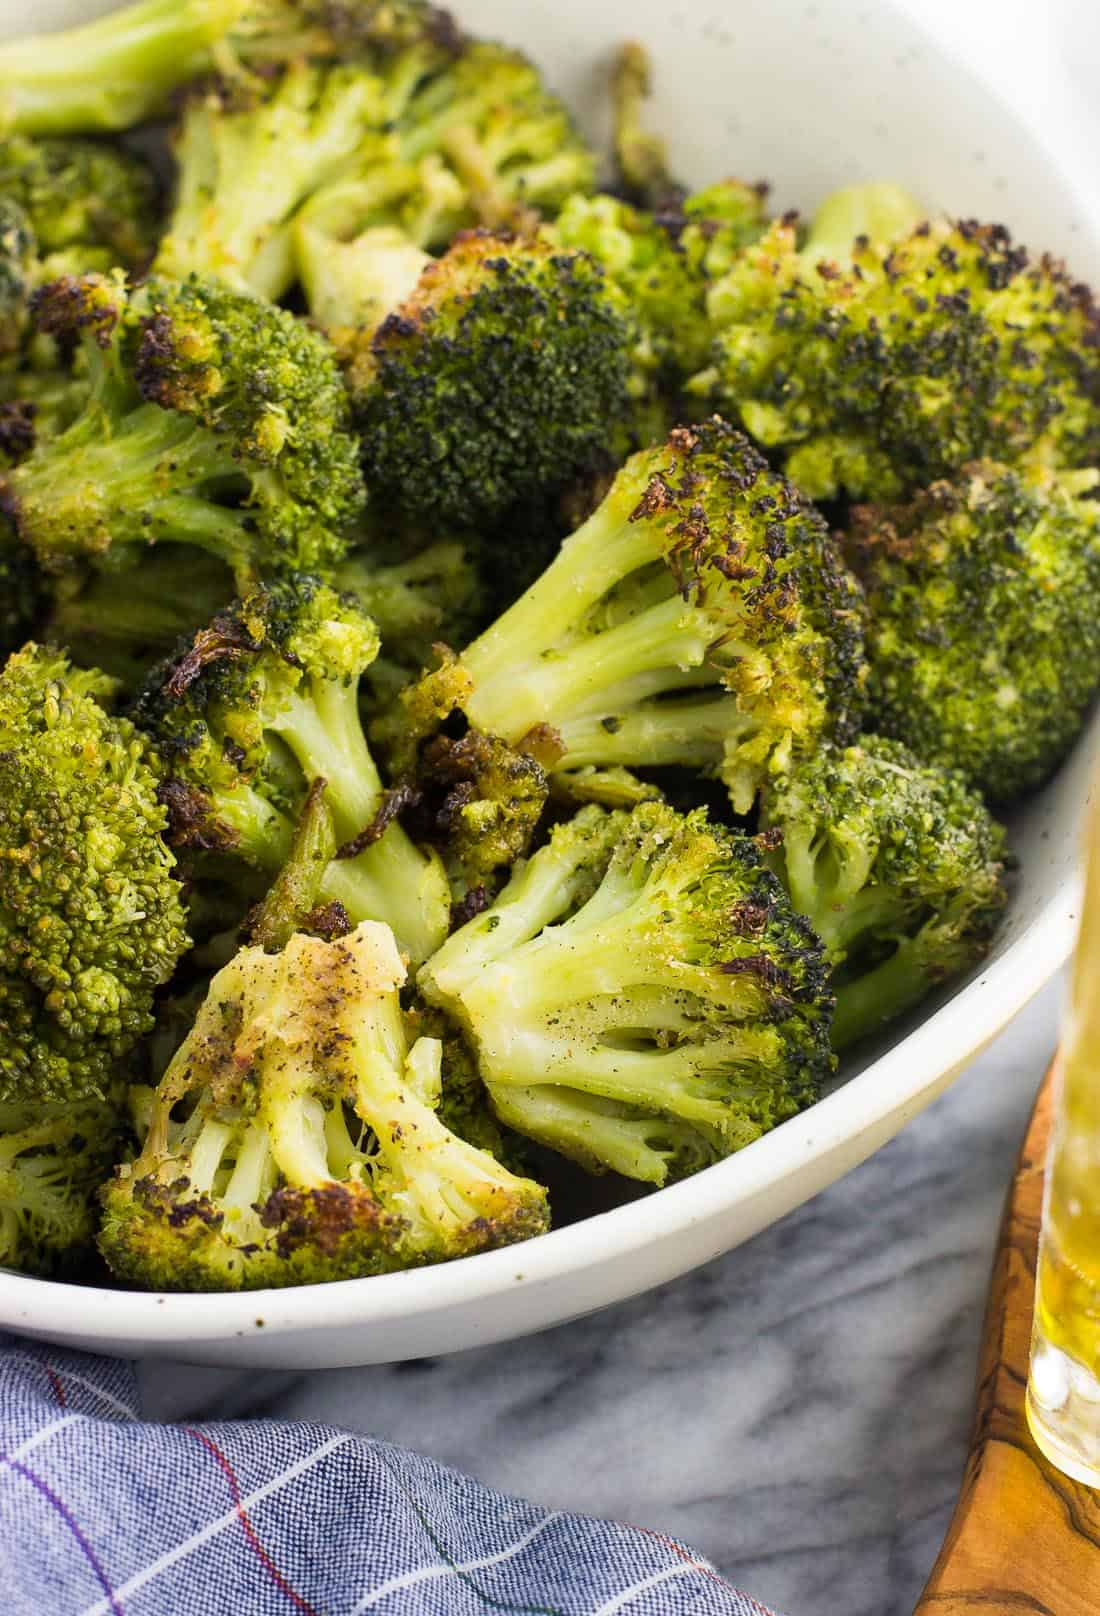 A close-up picture of oven roasted broccoli in a serving bowl